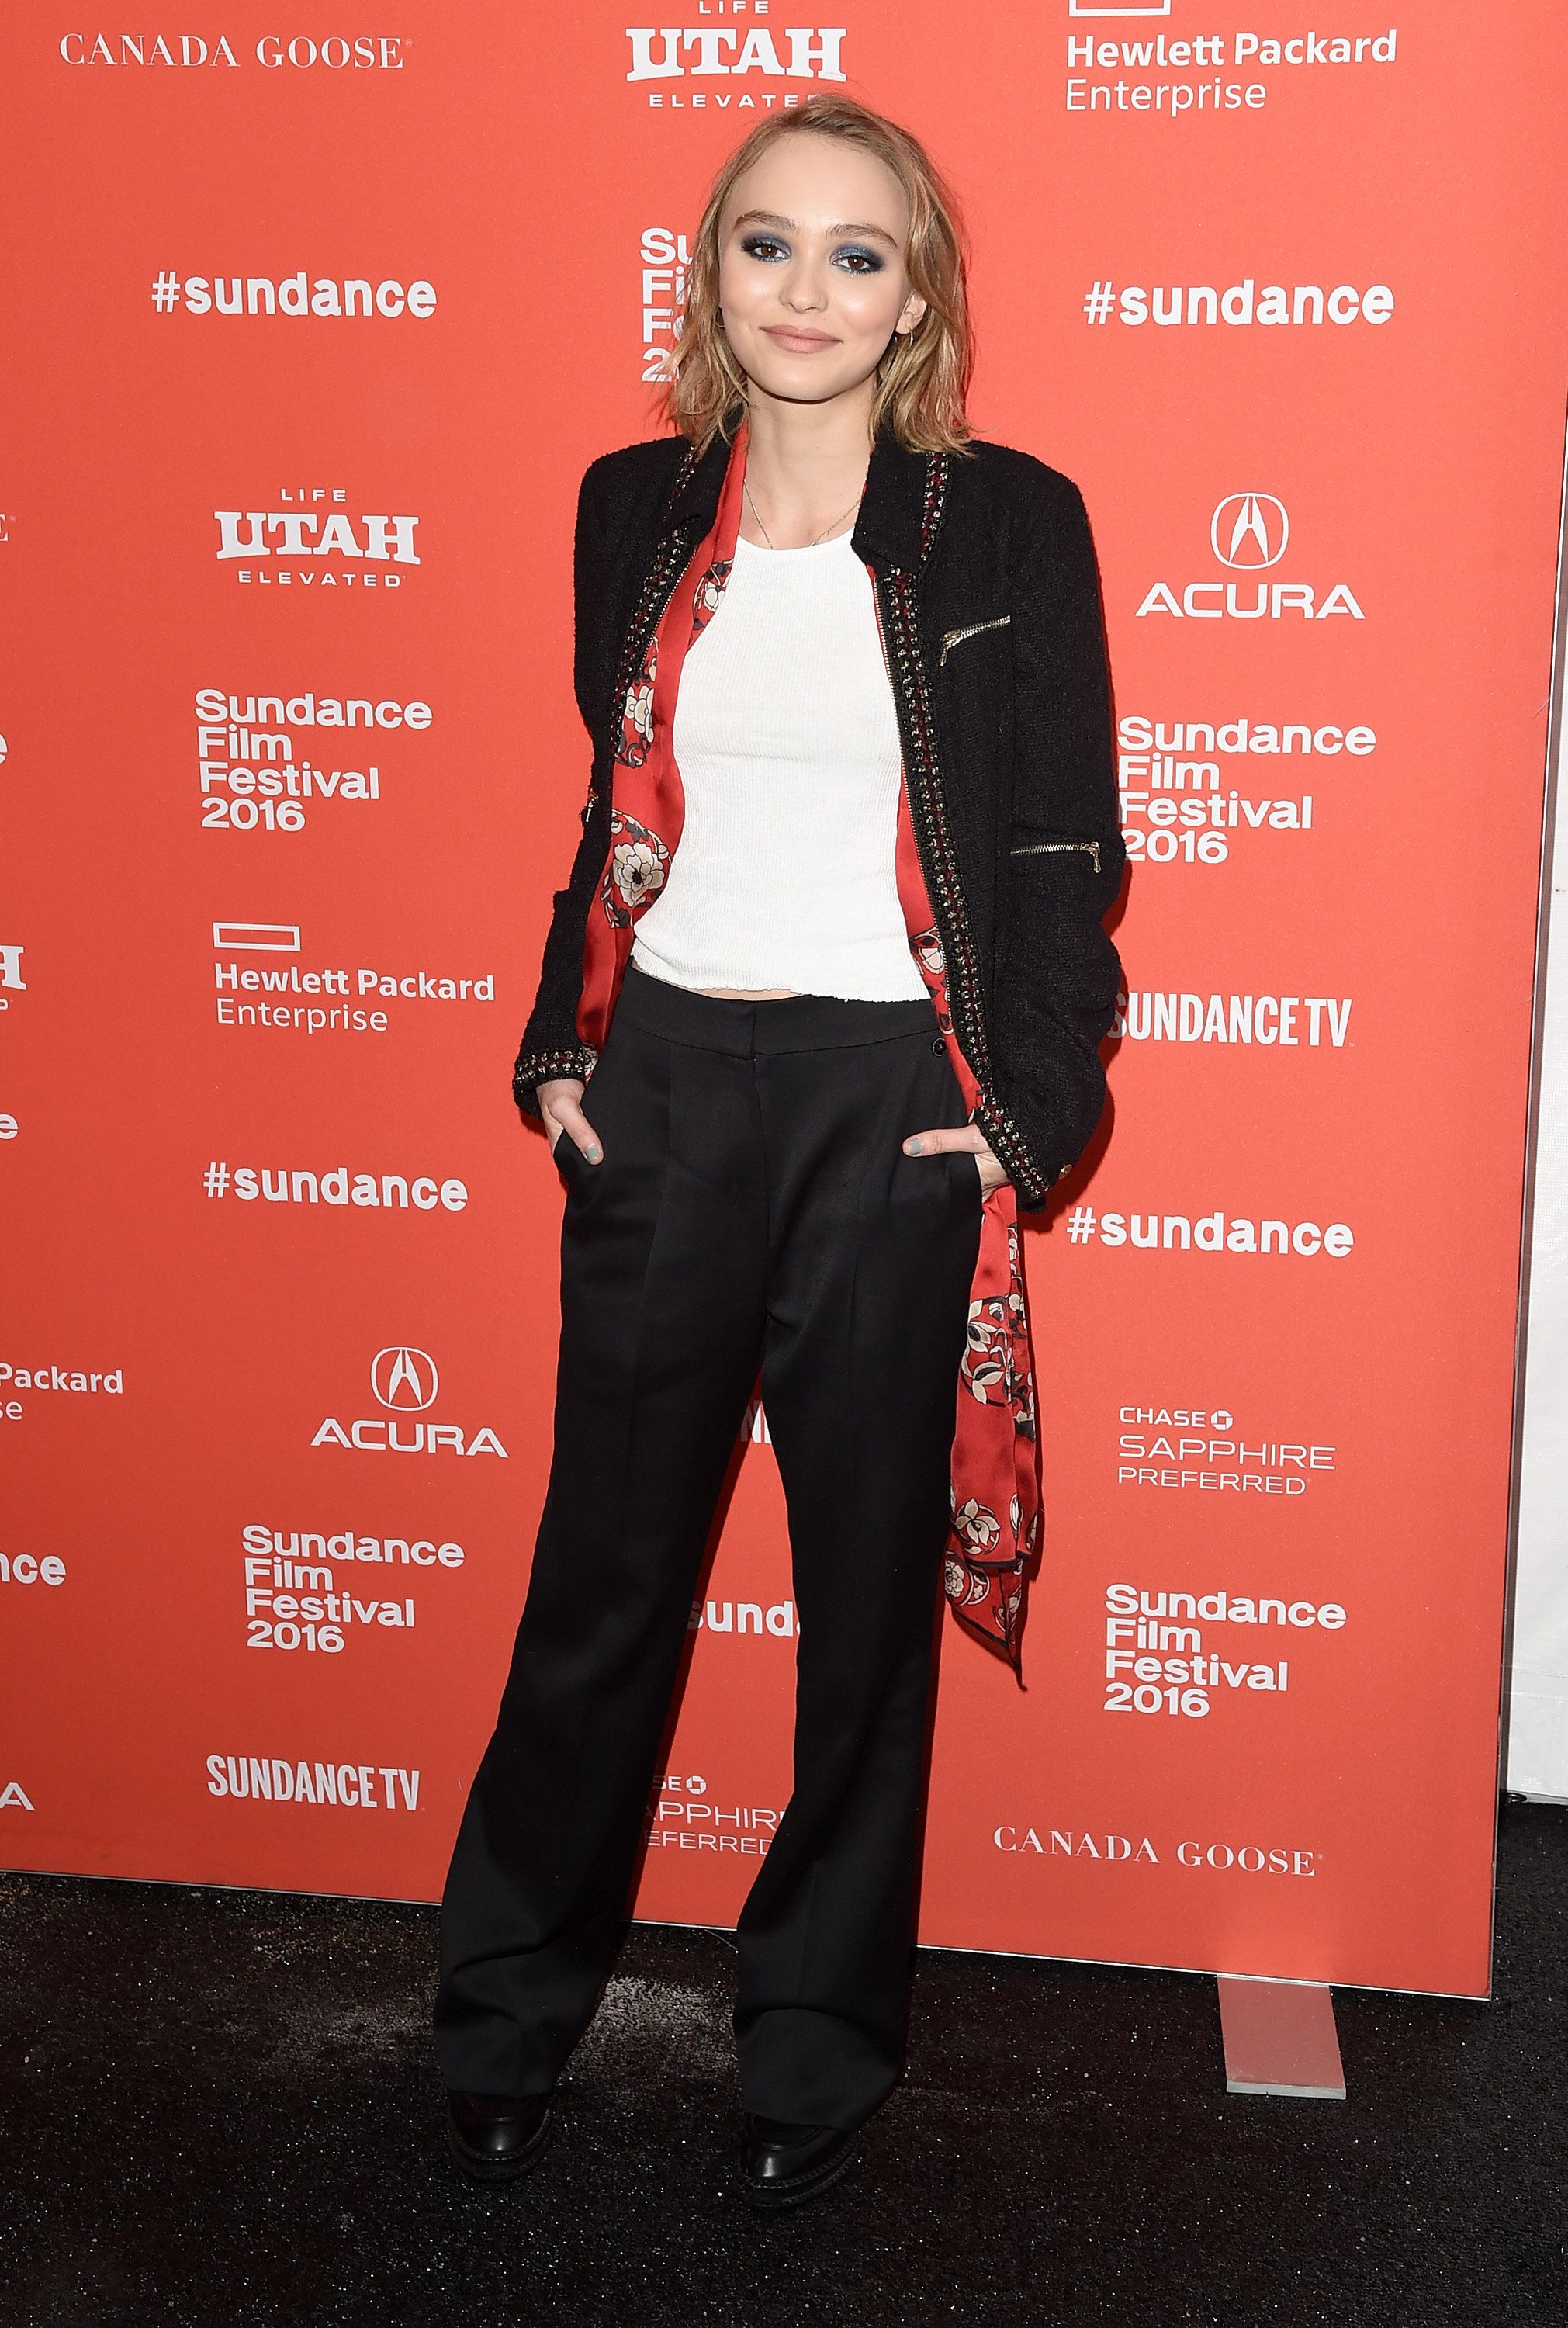 PARK CITY, UT - JANUARY 24:  Actress Lily-Rose Melody Depp attends the 'Yoga Hosers' Premiere during the 2016 Sundance Film Festival at Library Center Theater on January 24, 2016 in Park City, Utah.  (Photo by Jason Merritt/Getty Images for Sundance Film Festival)